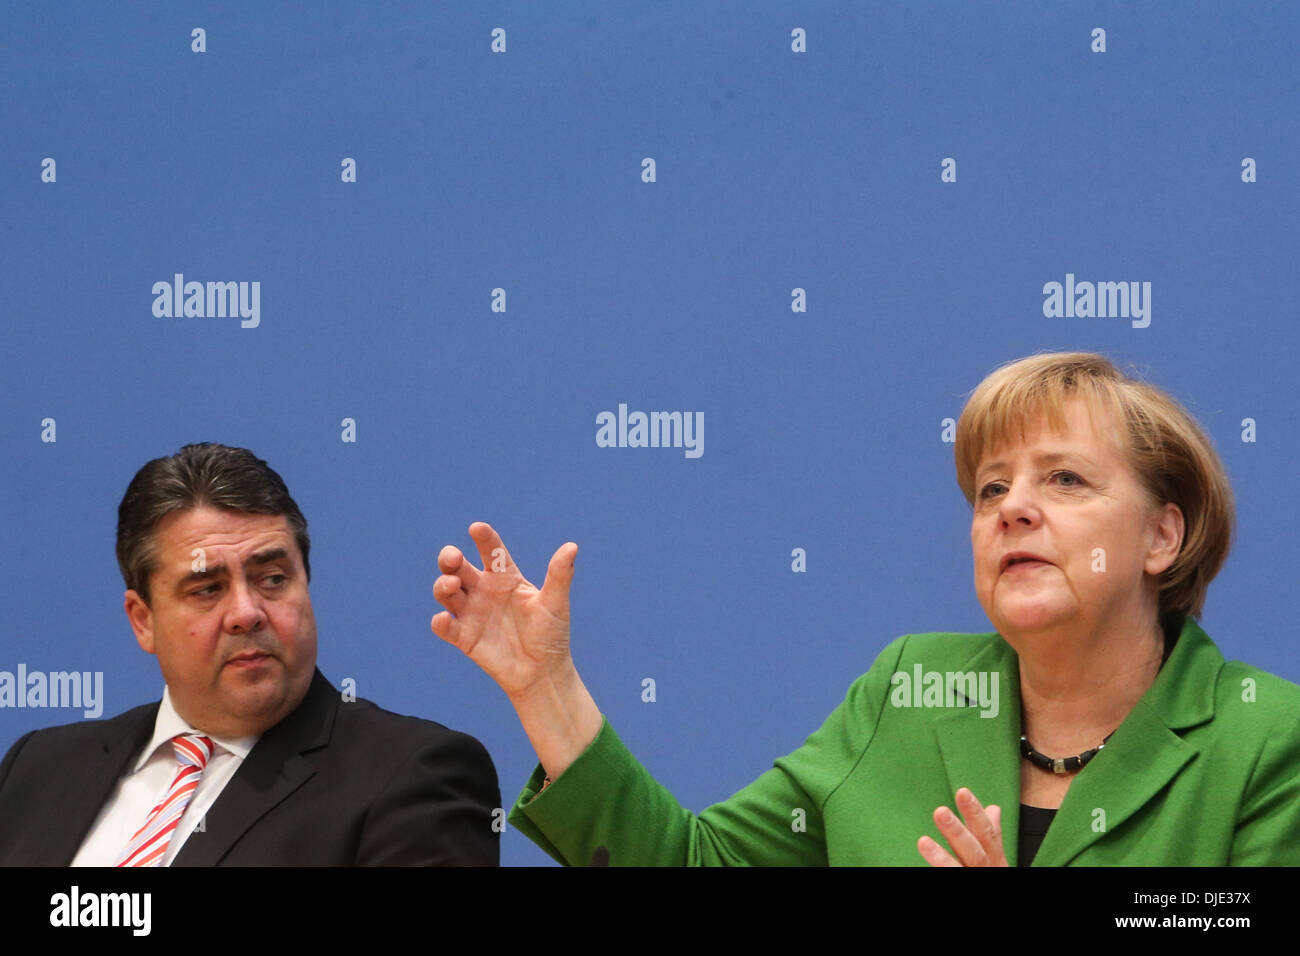 Berlin, Germany. 27th Nov, 2013. Sigmar Gabriel (L), Chairman of the Social Democratic Party (SPD) and German Chancellor Angela Merkel attend a press conference in Berlin, Germany, on Nov. 27, 2013. Leaders from Germany's main parties signed provisionally a coalition agreement on Wednesday, paving the road for forming a new government two months after a federal election. Credit:  Zhang Fan/Xinhua/Alamy Live News Stock Photo